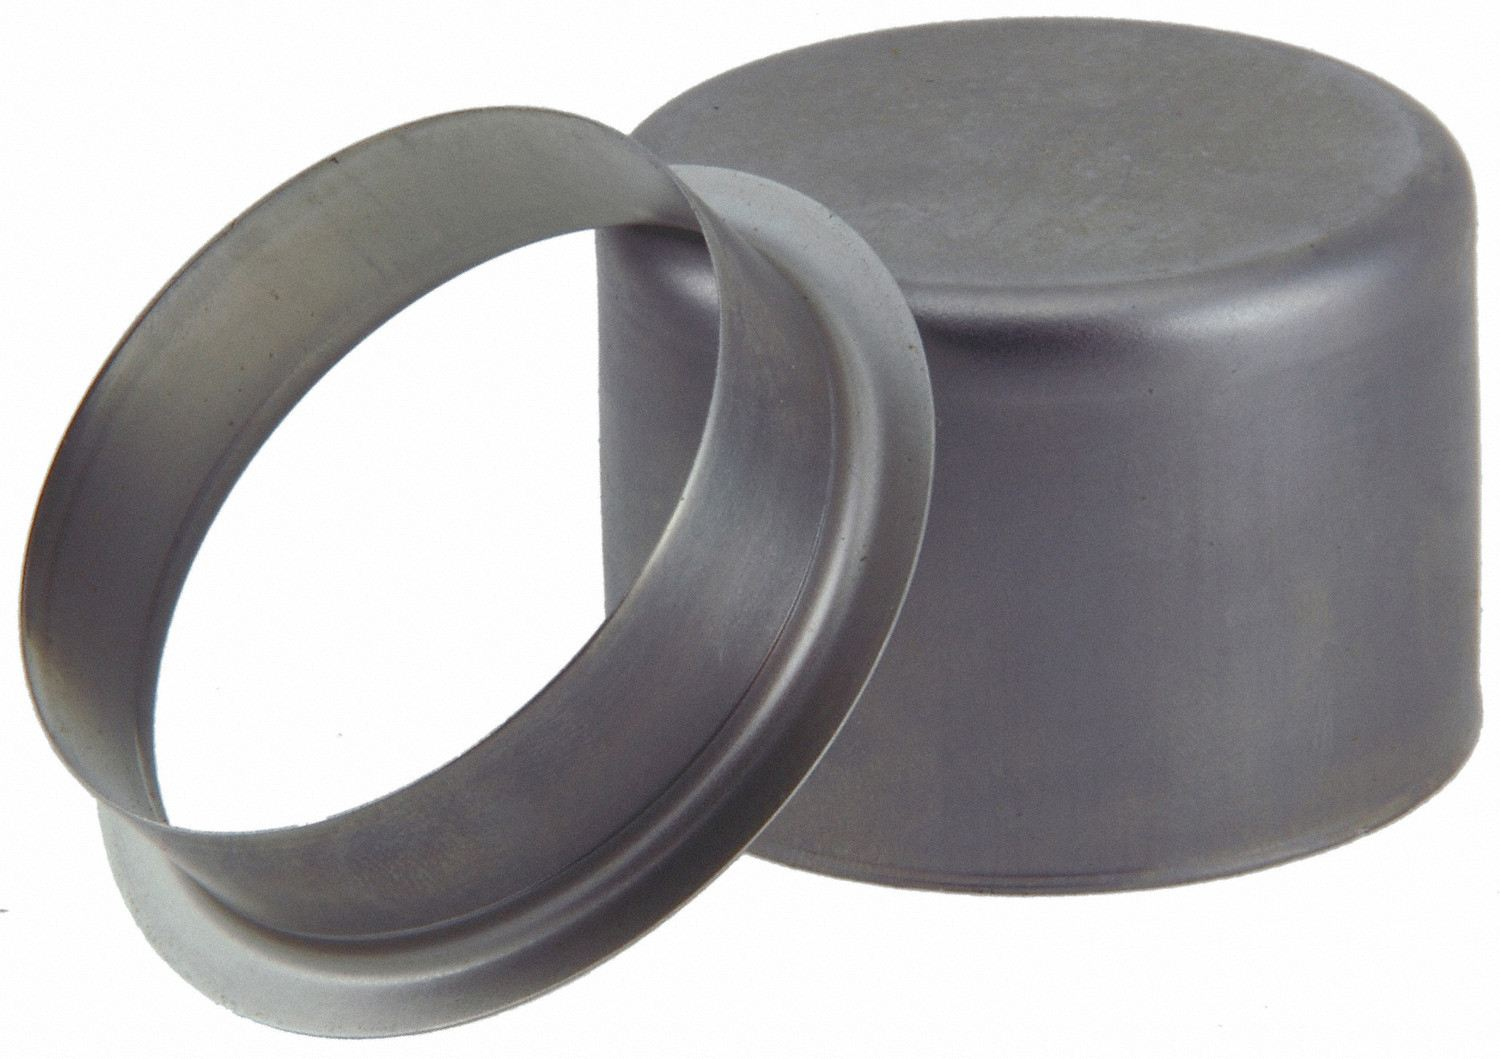 NATIONAL SEAL/BEARING/HUB ASSY - Axle Differential Repair Sleeve, Redi-Sleeve - BCA 99139